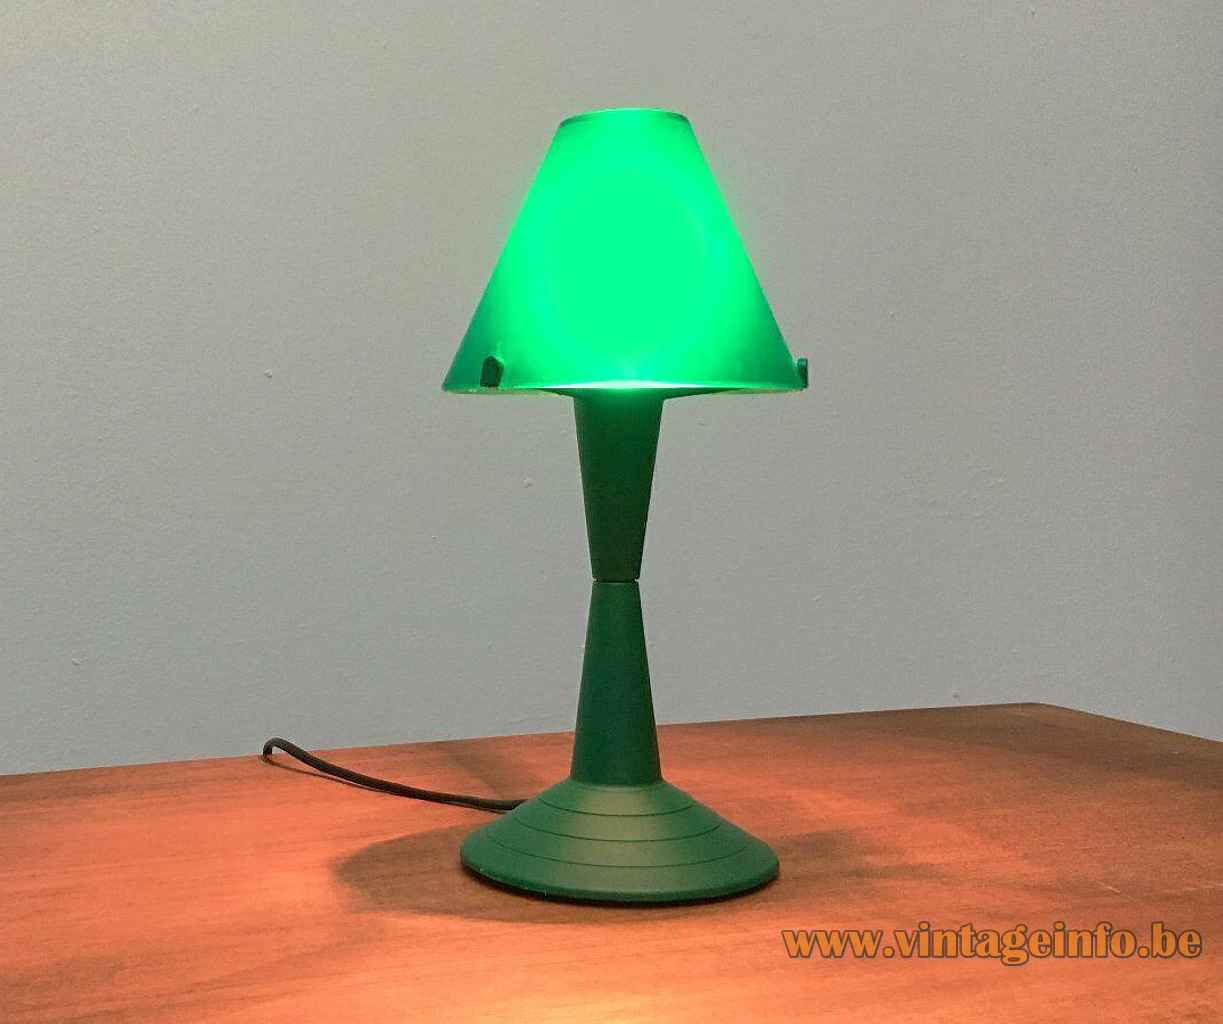 Veneta Lumi Lulu table lamp round green plastic base concave rod conical lampshade 1990s Italy